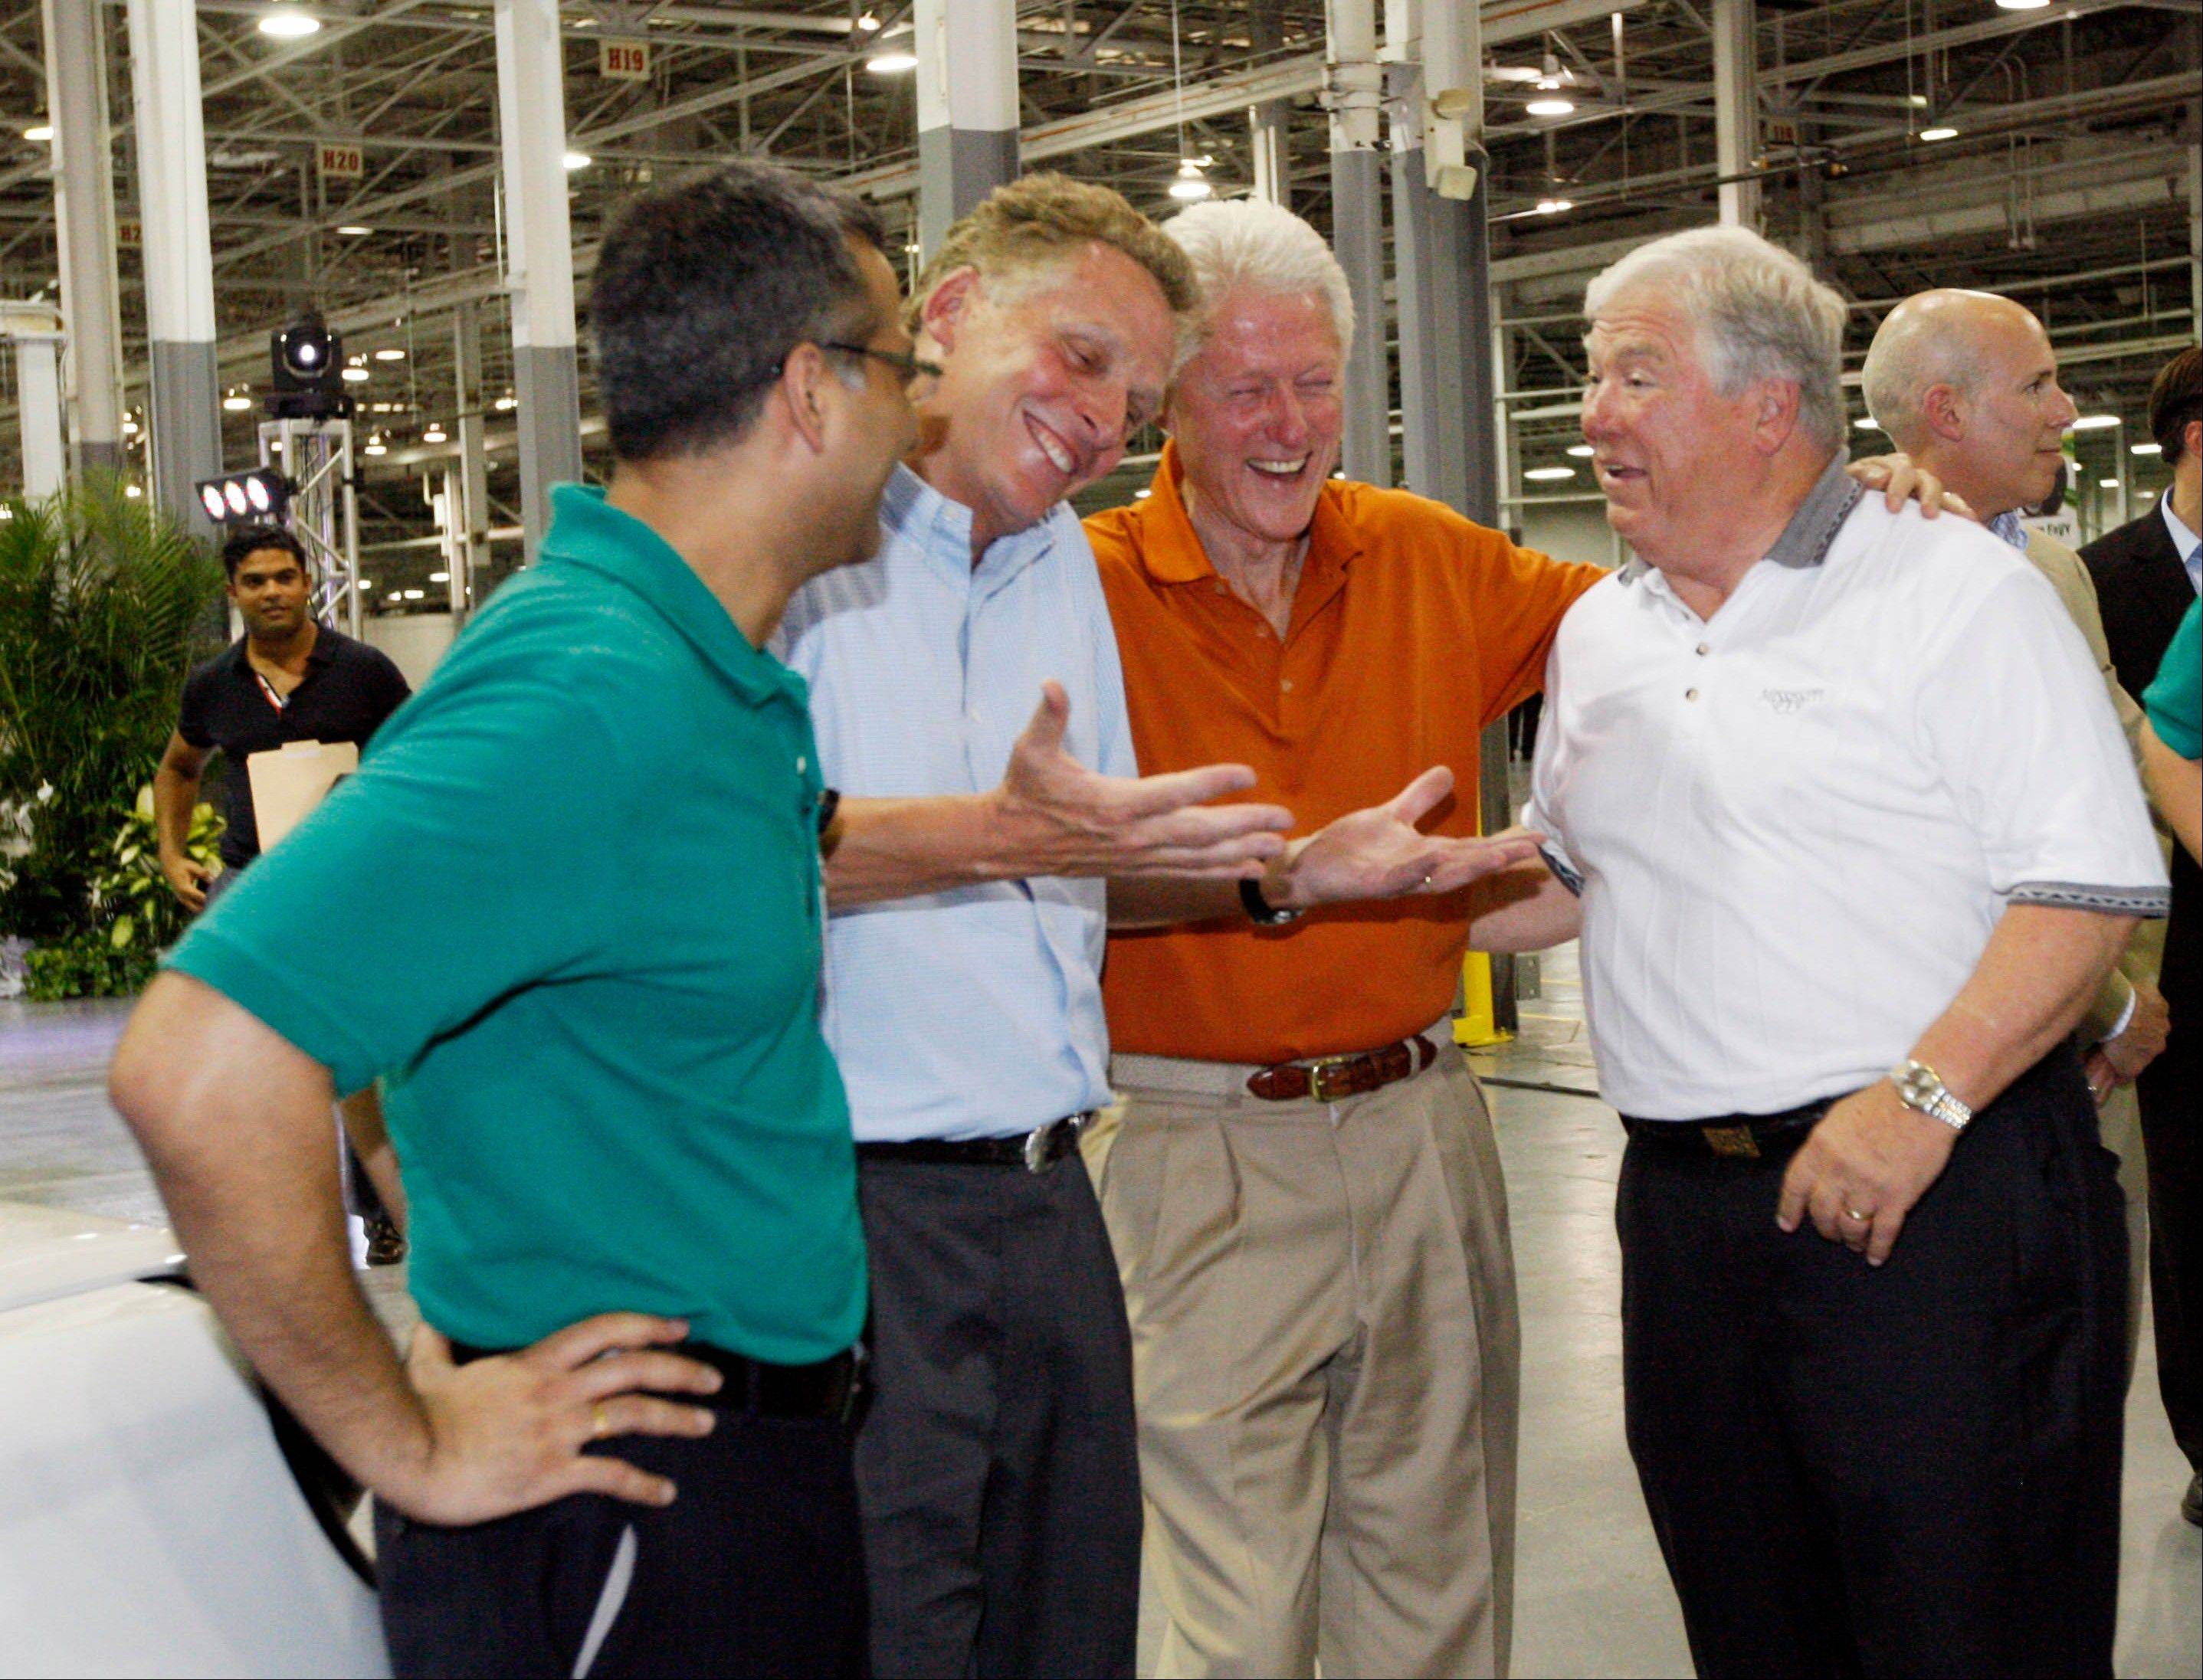 In this July 6, 2012, file photograph, then GreenTech Automotive executive Terry McAuliffe, second from left, jokes with former President Bill Clinton, center and former Mississippi Gov. Haley Barbour following the unveiling of their new electric MyCar at their manufacturing facility in Horn Lake, Miss. The big plans of eventually hiring a workforce of 25,000 people and eventually producing 1 million cars a year have been scaled back to a smaller facility to make 30,000 electric vehicles a year.